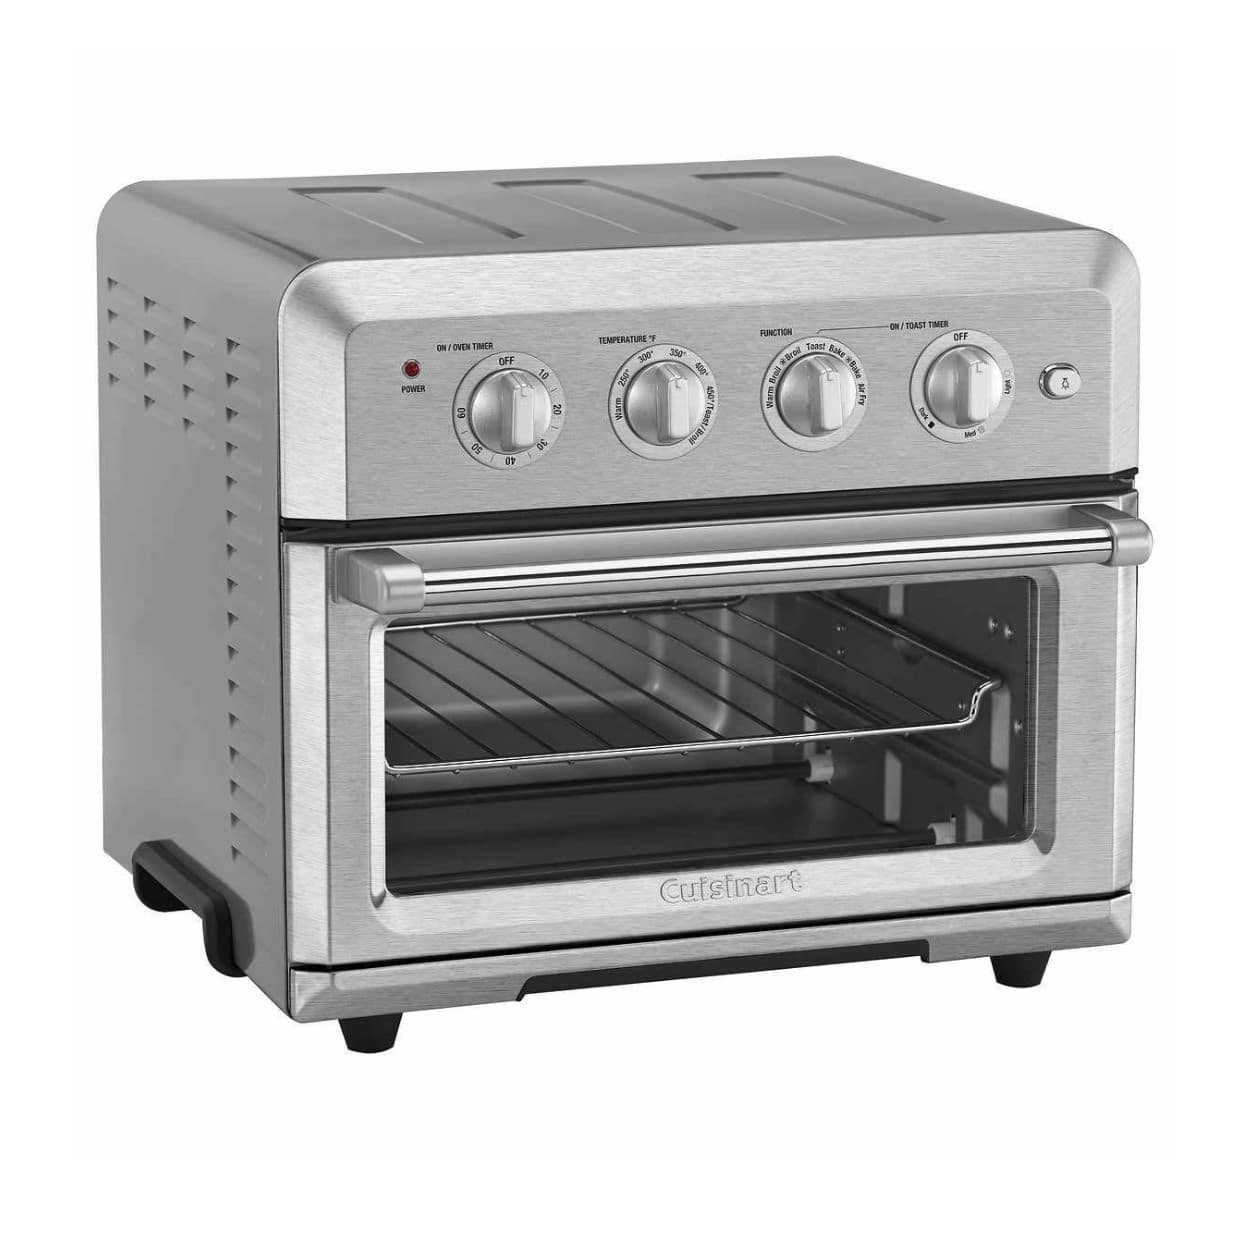 (refurb) Cuisinart CTOA-120PC1 (same as TOA-60) Air Fryer Toaster Oven $90 + free s/h